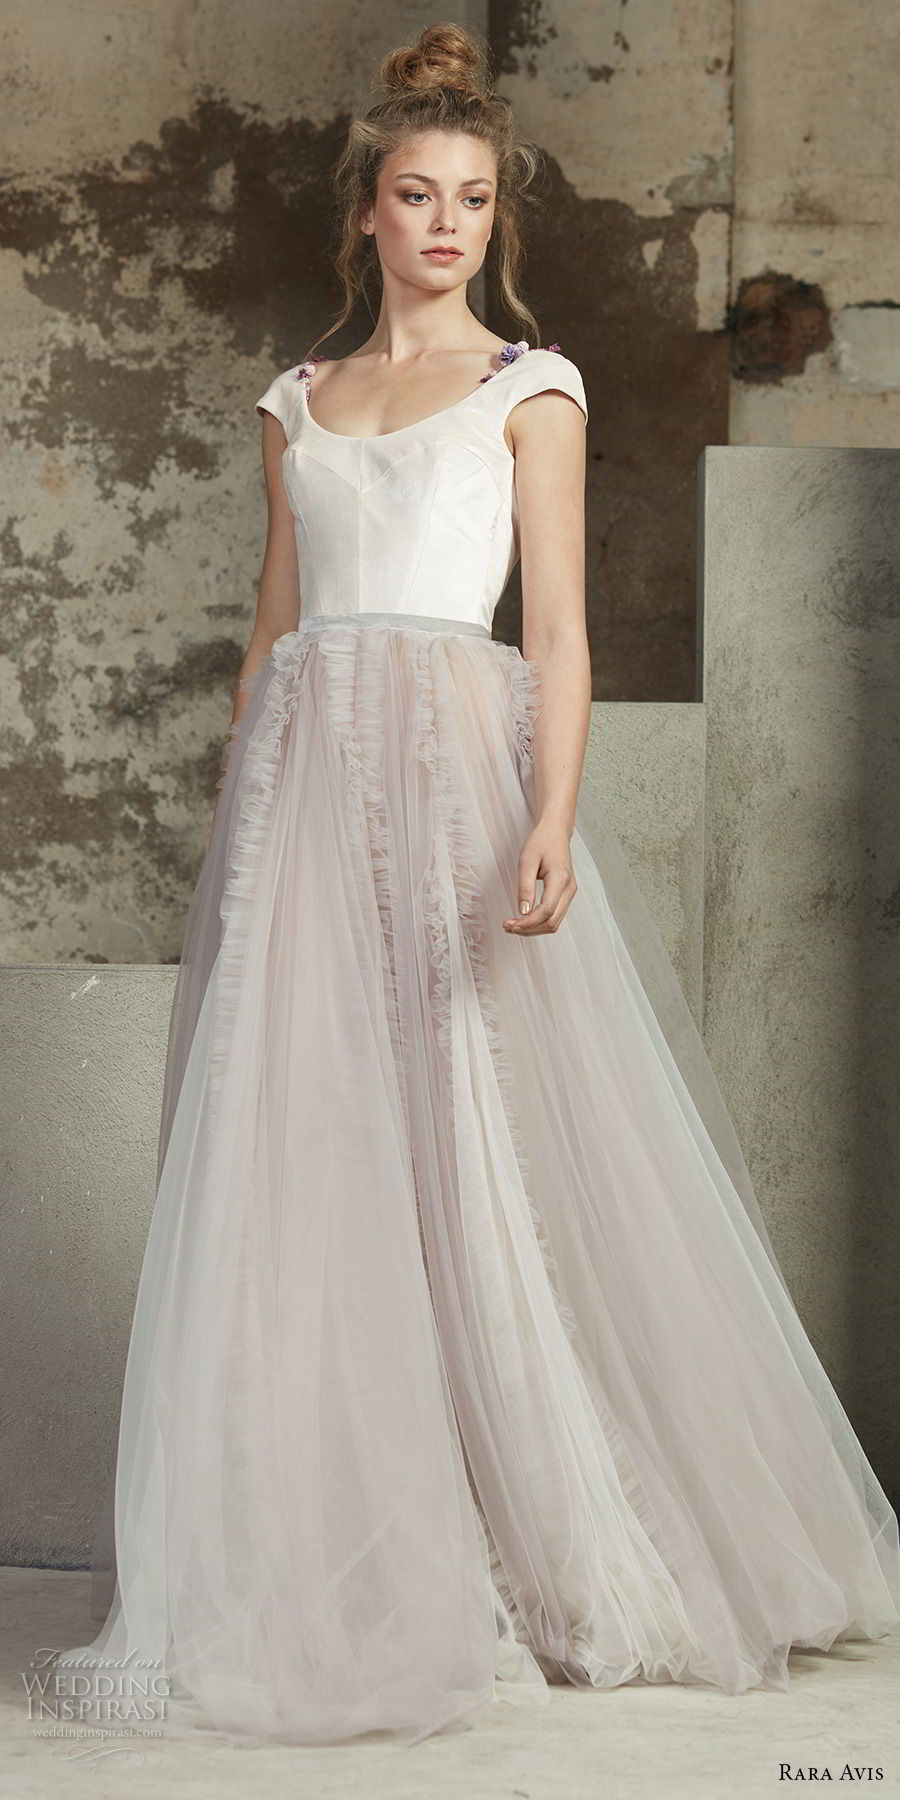 rara avis 2017 bridal cap sleeves scoop neckline unembellished bodice blush tulle skirt romantic a line wedding dress open scoop back medium train (24) mv